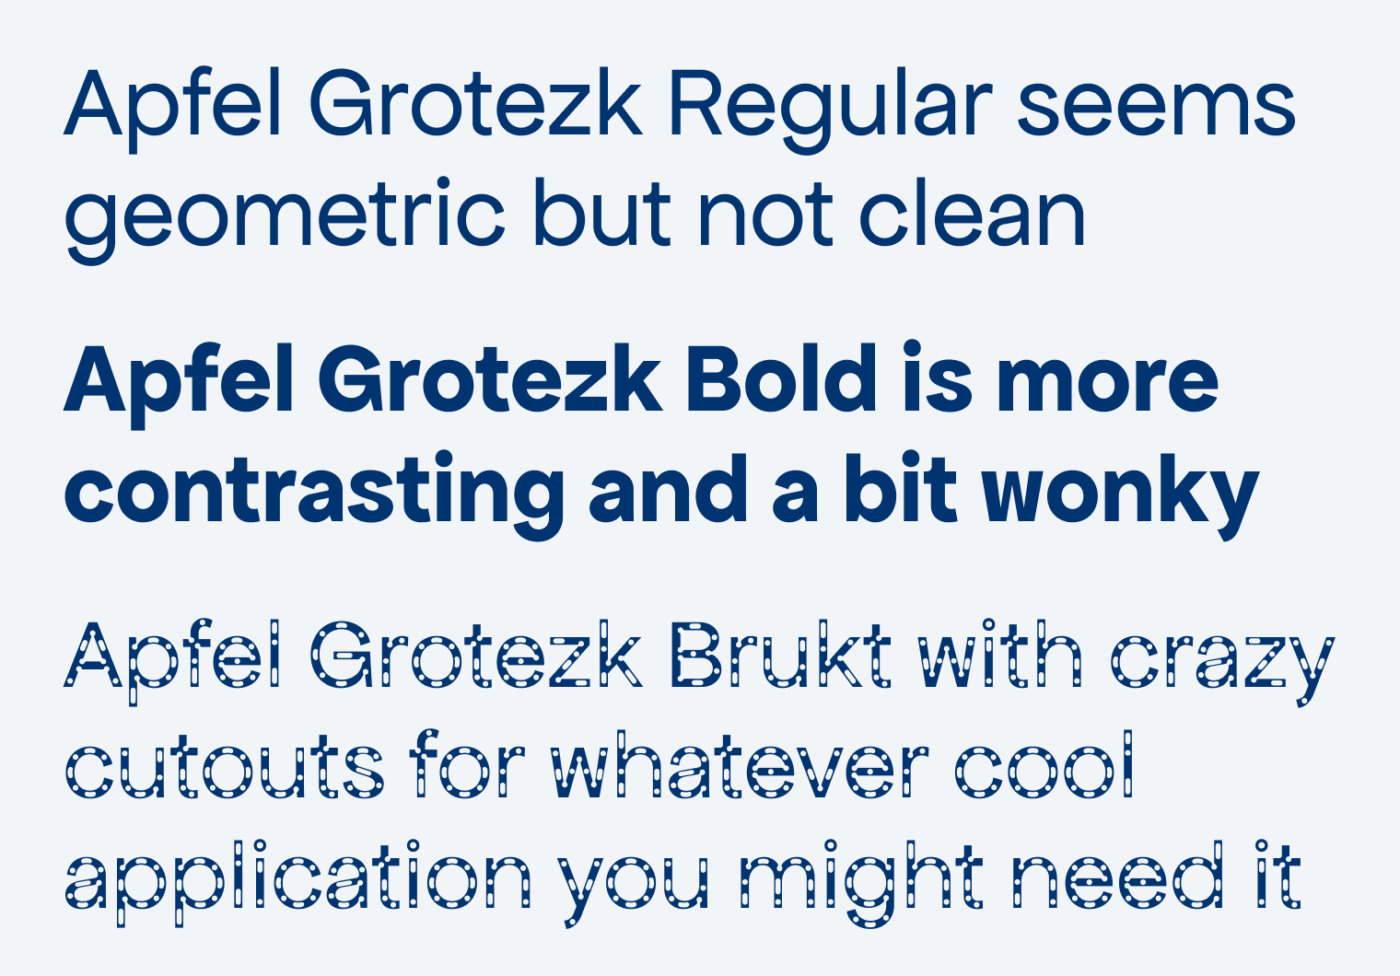 Apfel Grotezk Regular seems geometric but not clean. Apfel Grotezk Bold is more contrasting and a bit wonky. Apfel Grotezk Brukt with crazy cutouts for whatever cool application you might need it.